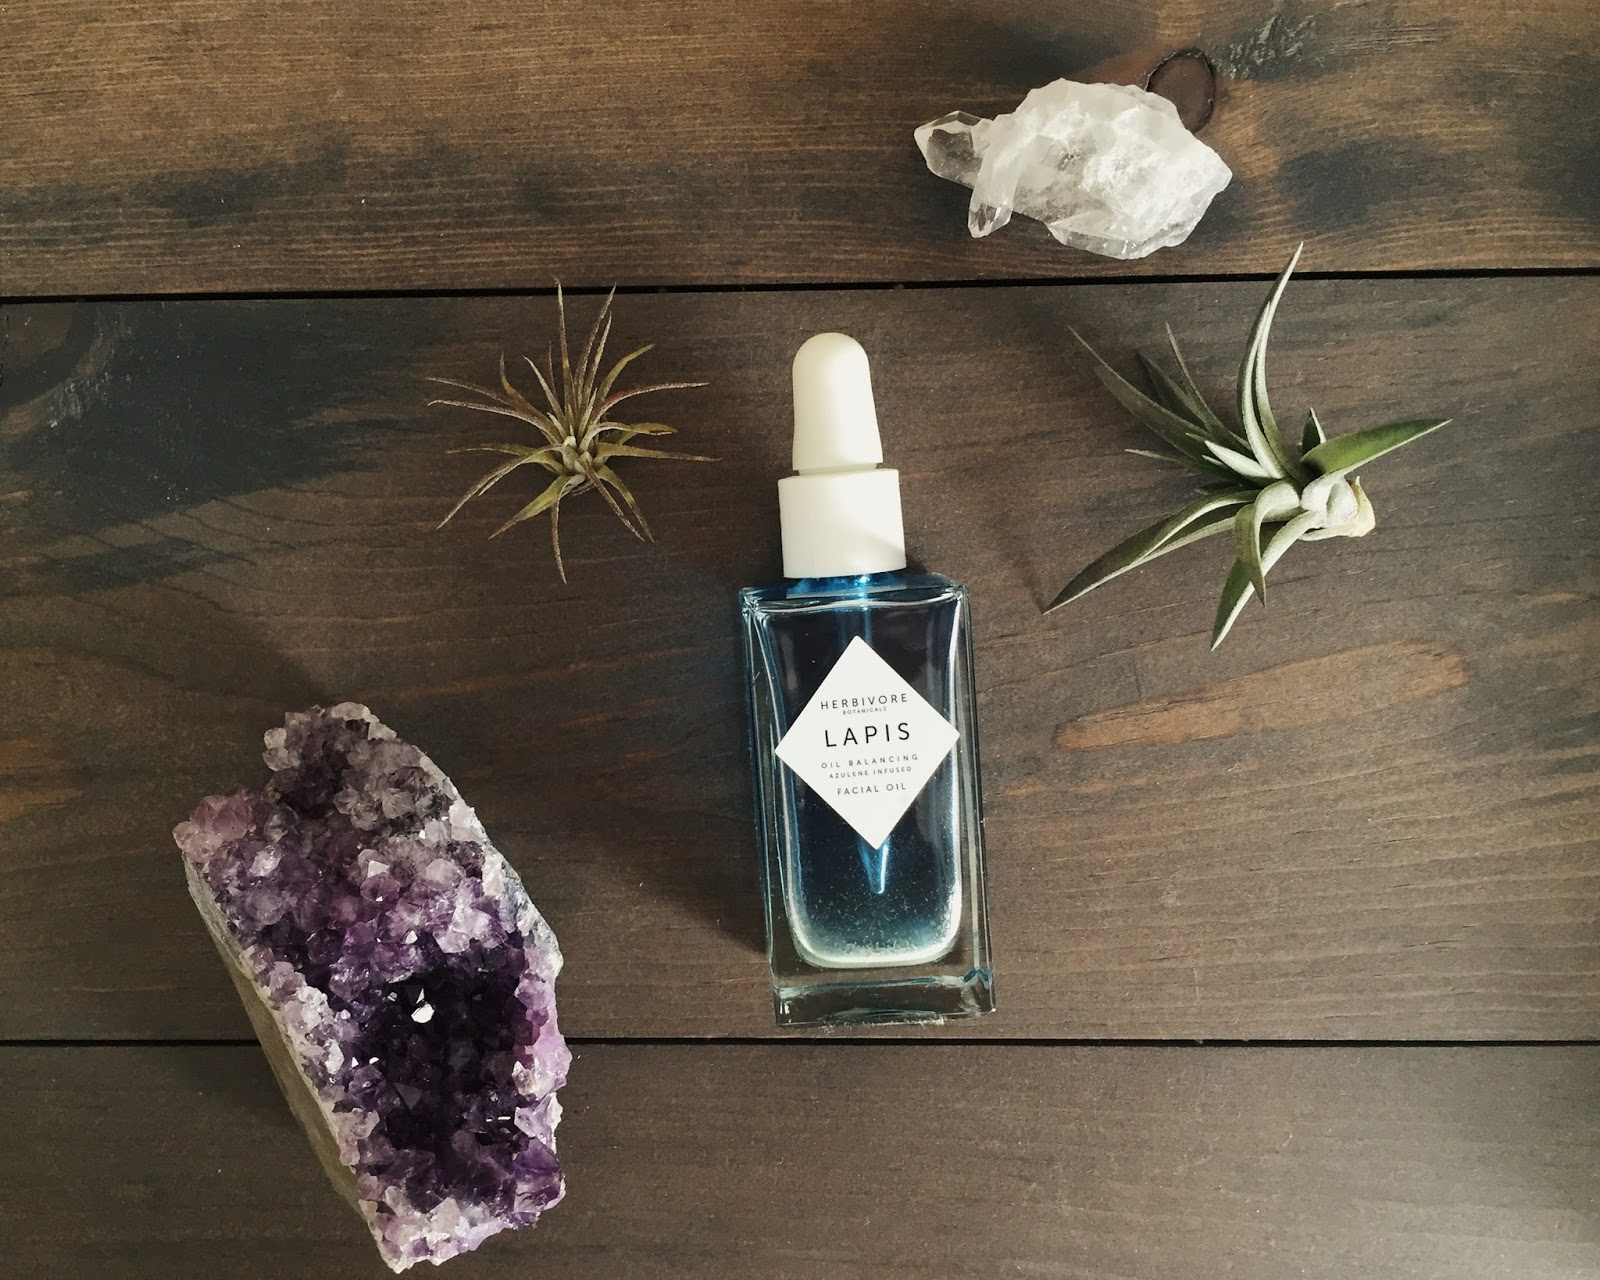 Herbivore Botanicals Lapis Facial Oil Review natural acne skincare treatment hellolindasau sephora